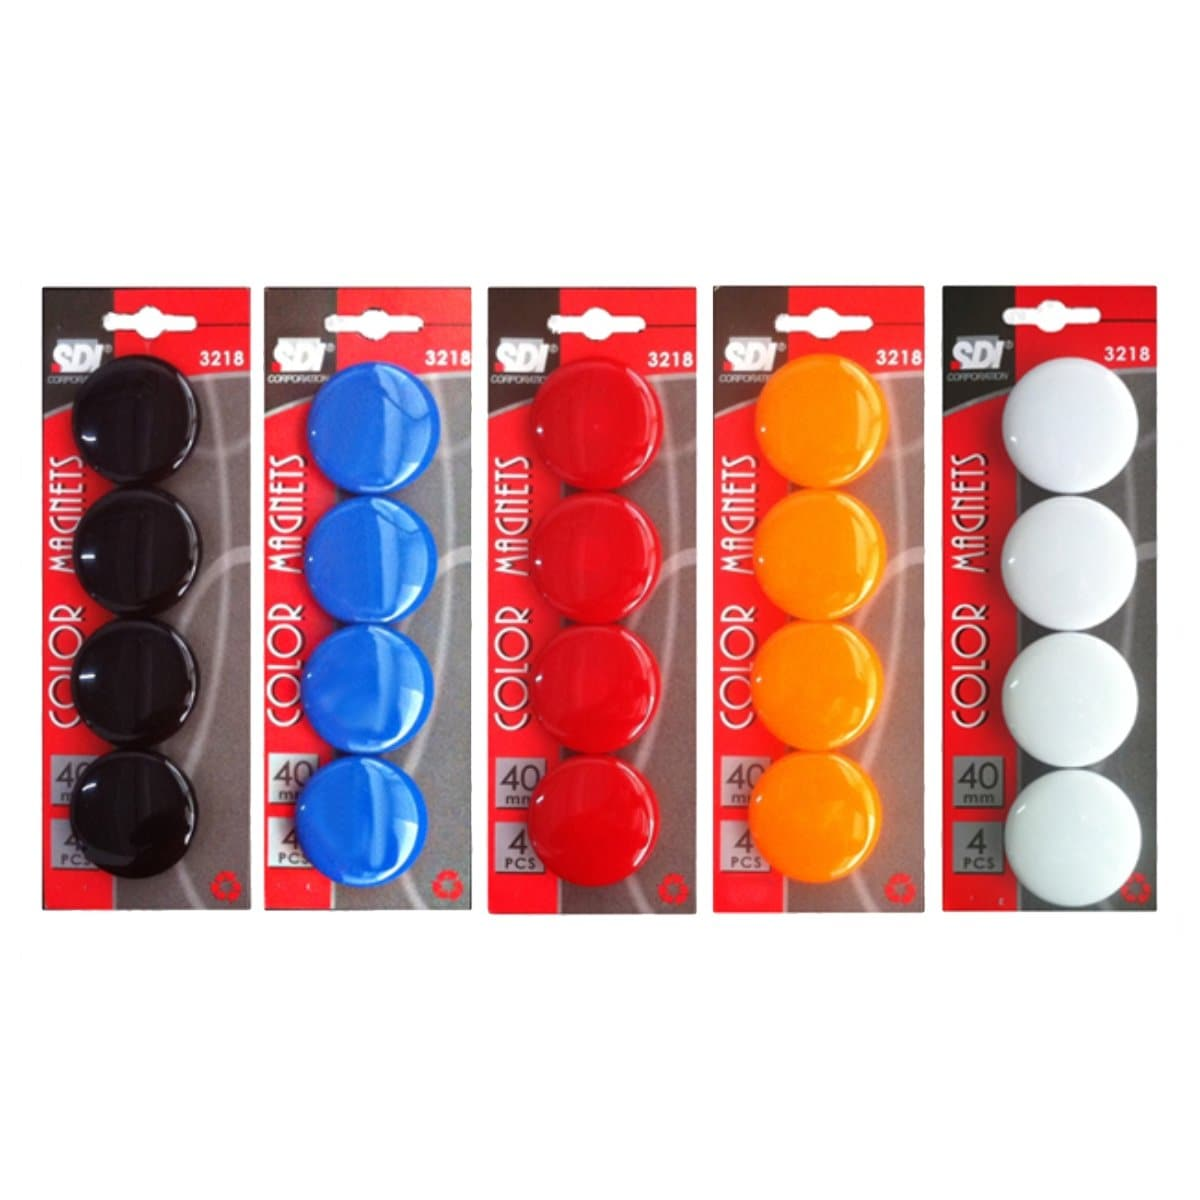 SDI Color Magnets, 40mm, 4/pack, available in Black, Blue, Orange, Red or White